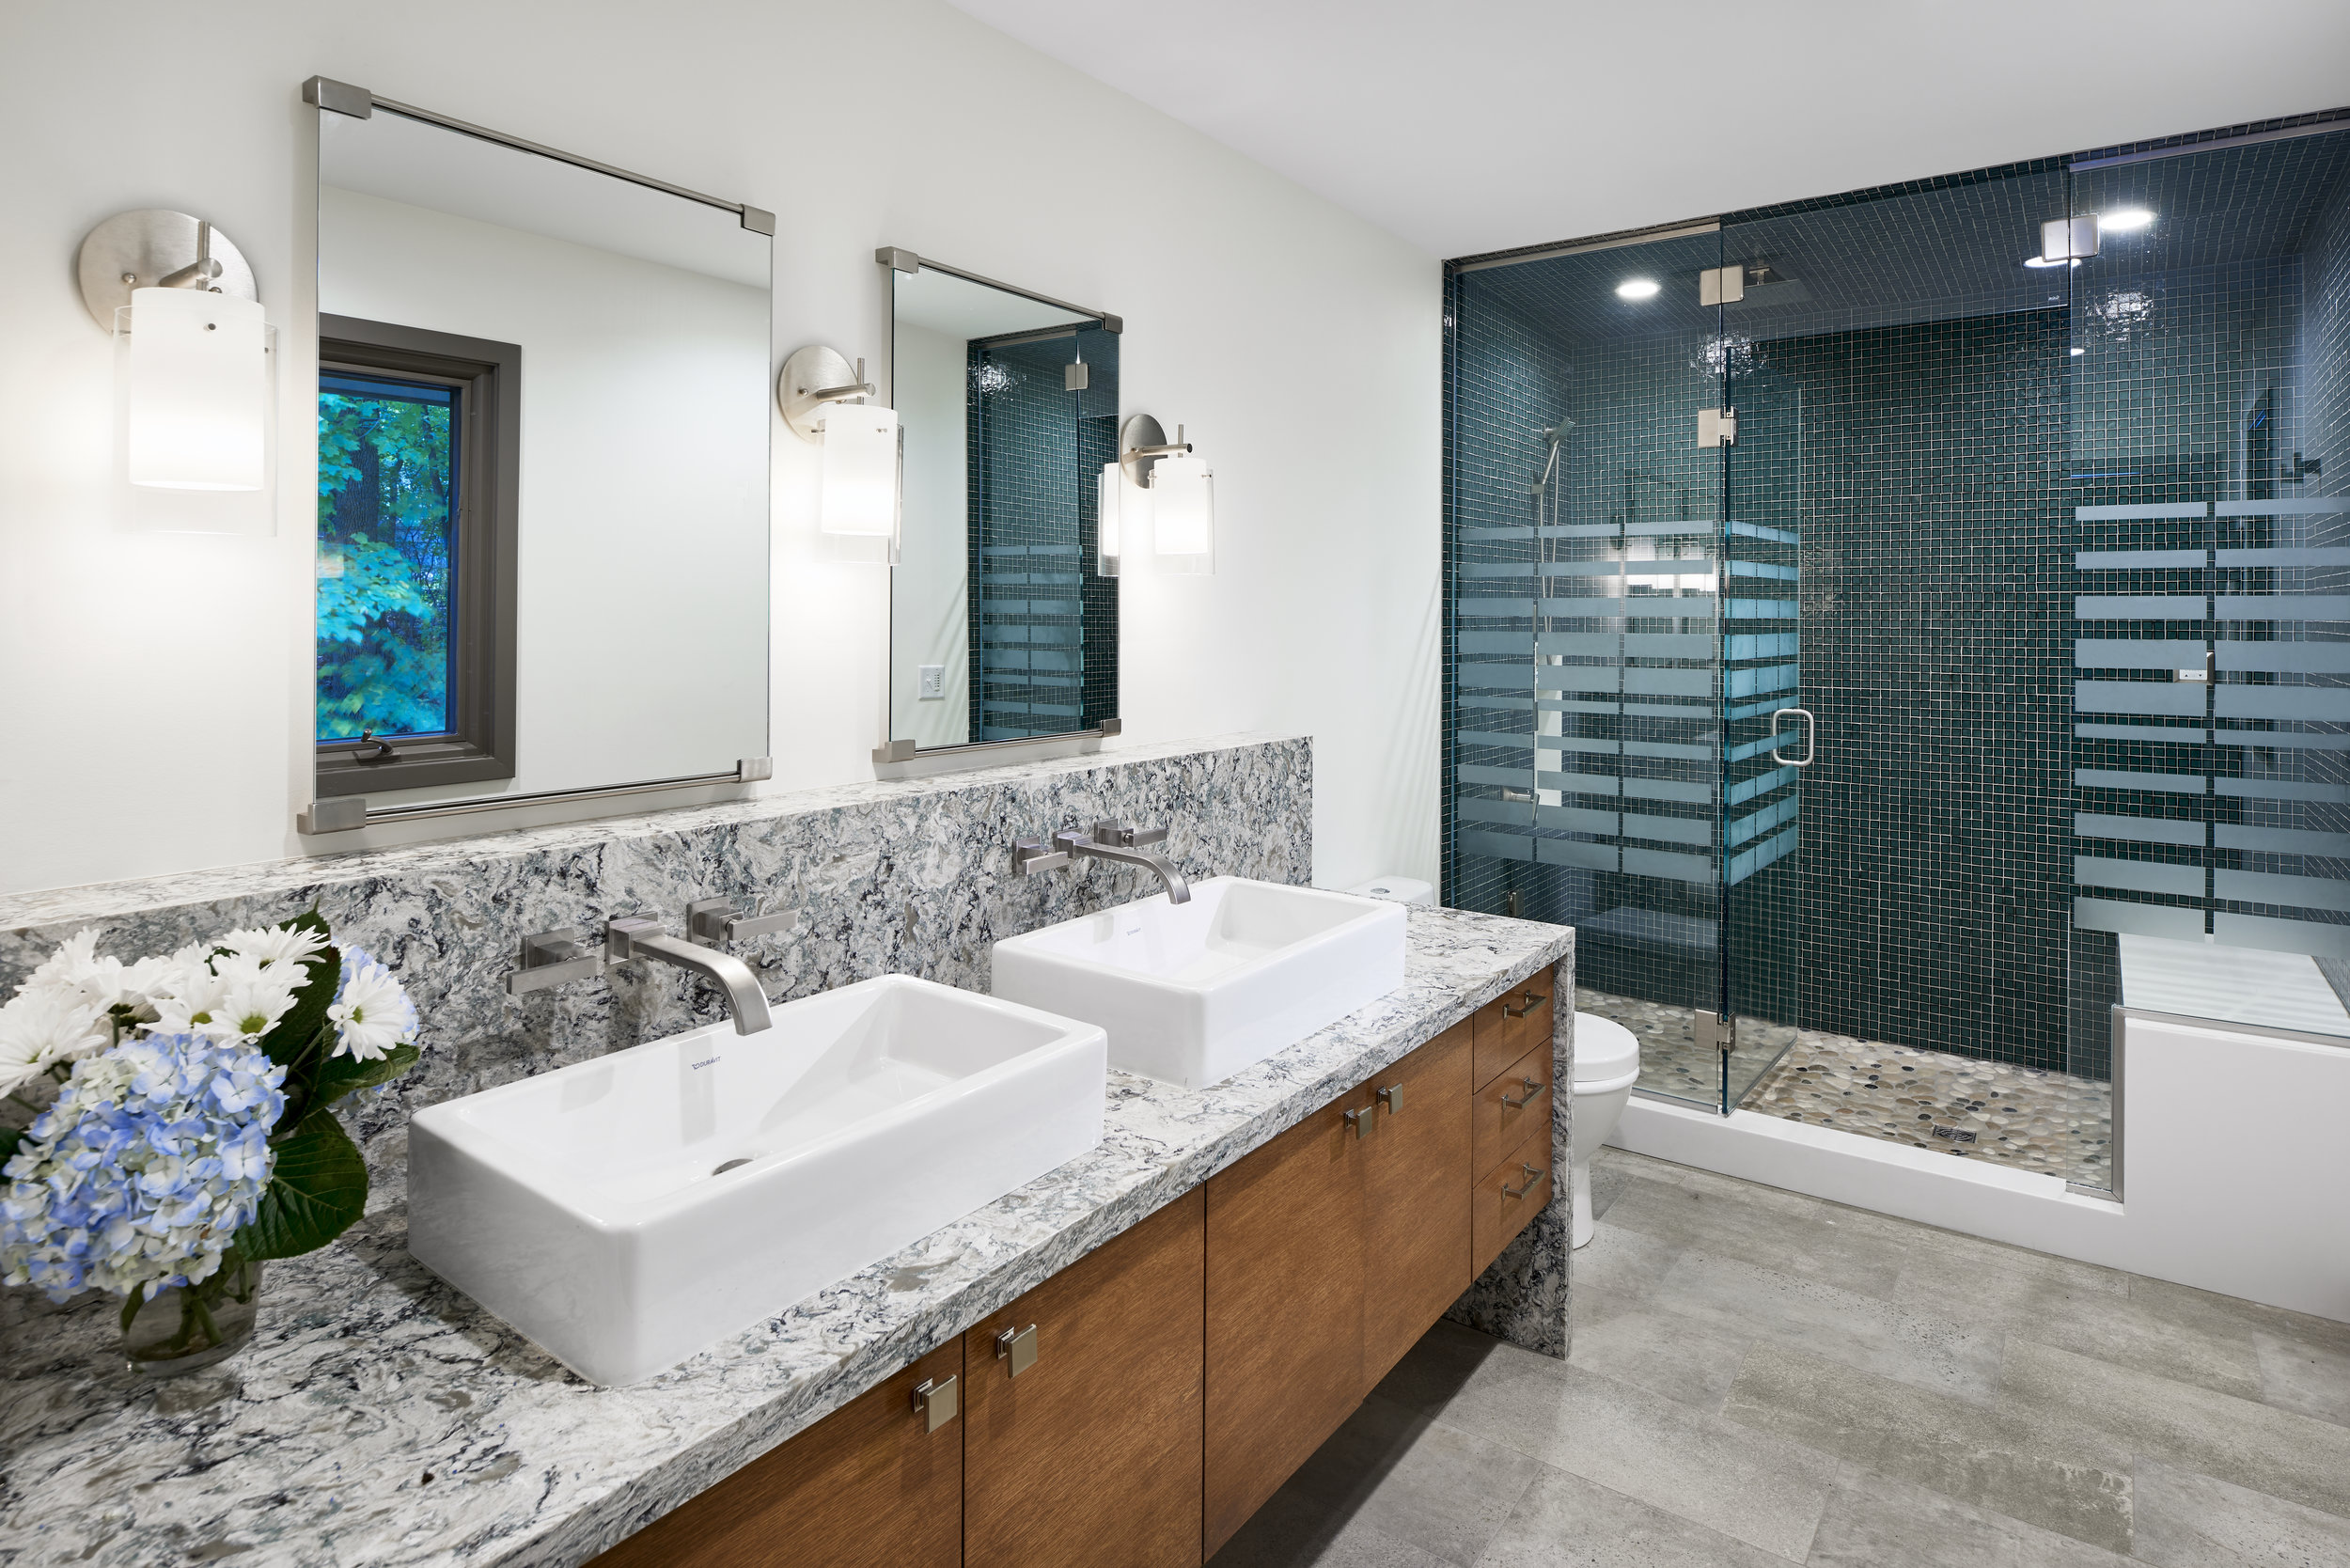 Double white box sinks in bathroom, designed by NewStudio Architecture